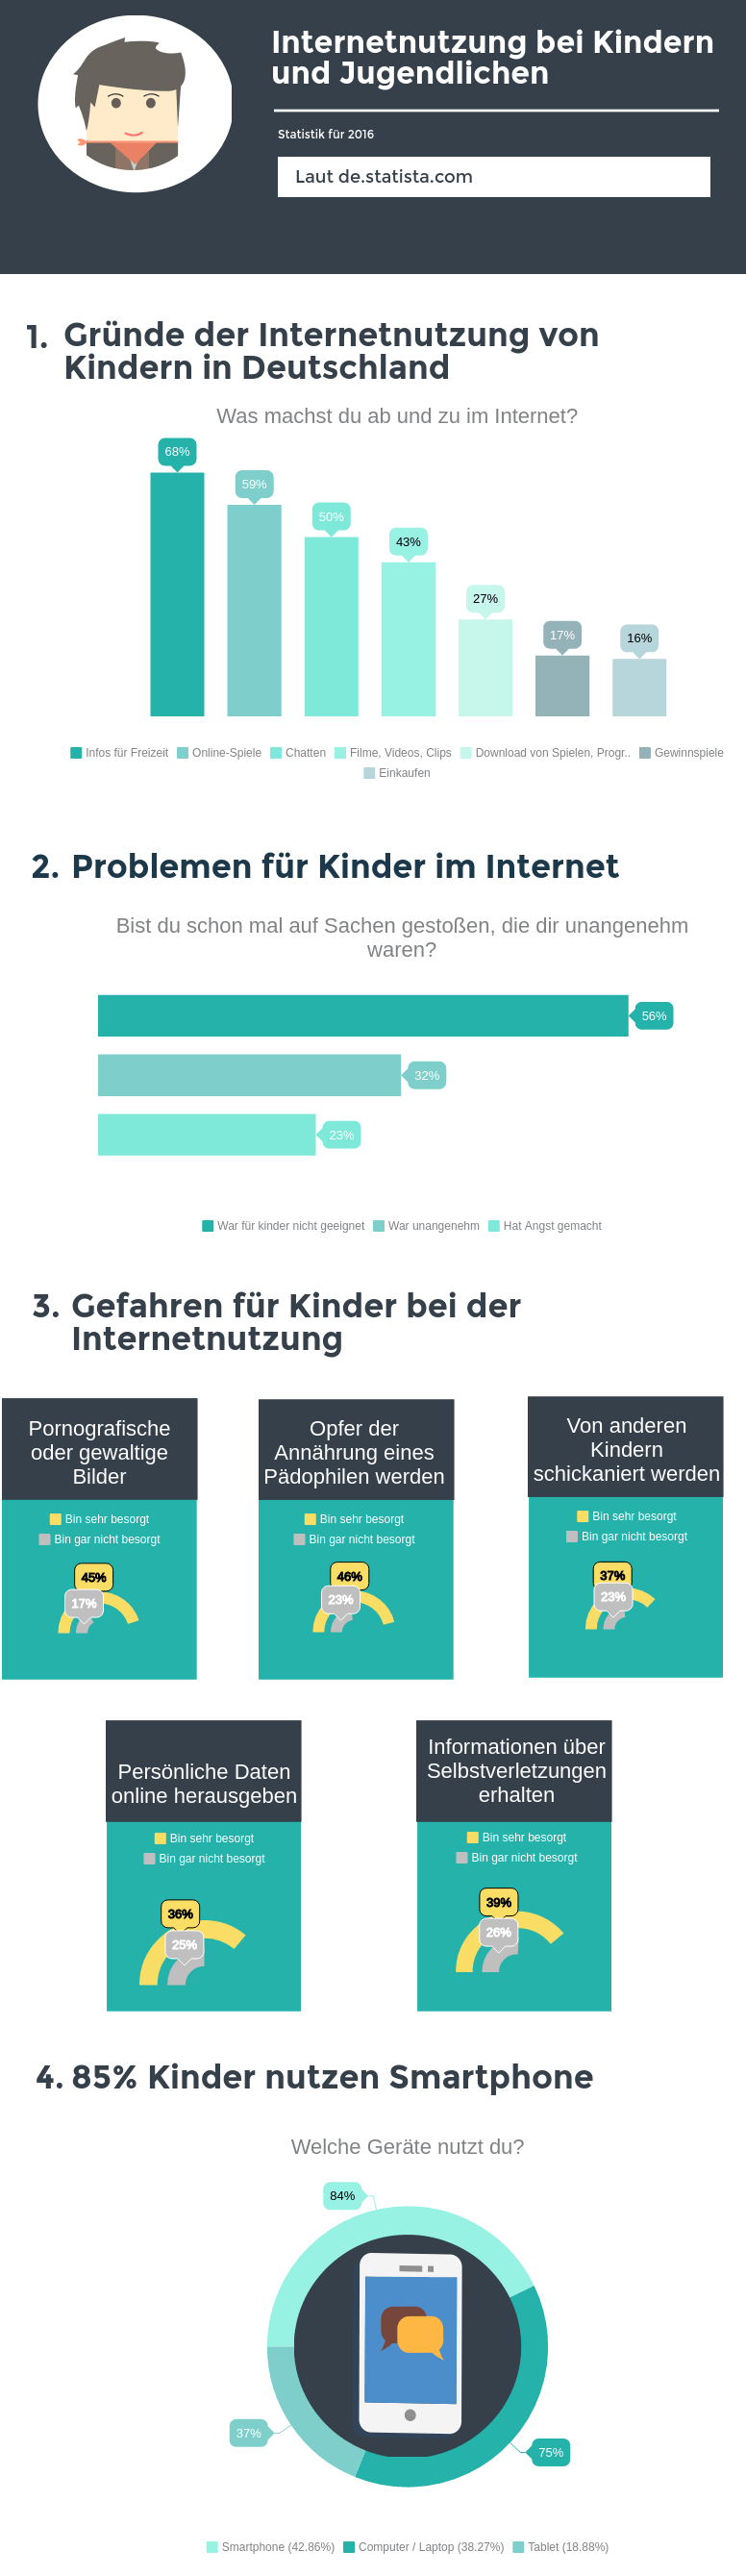 internetnutzung kinder